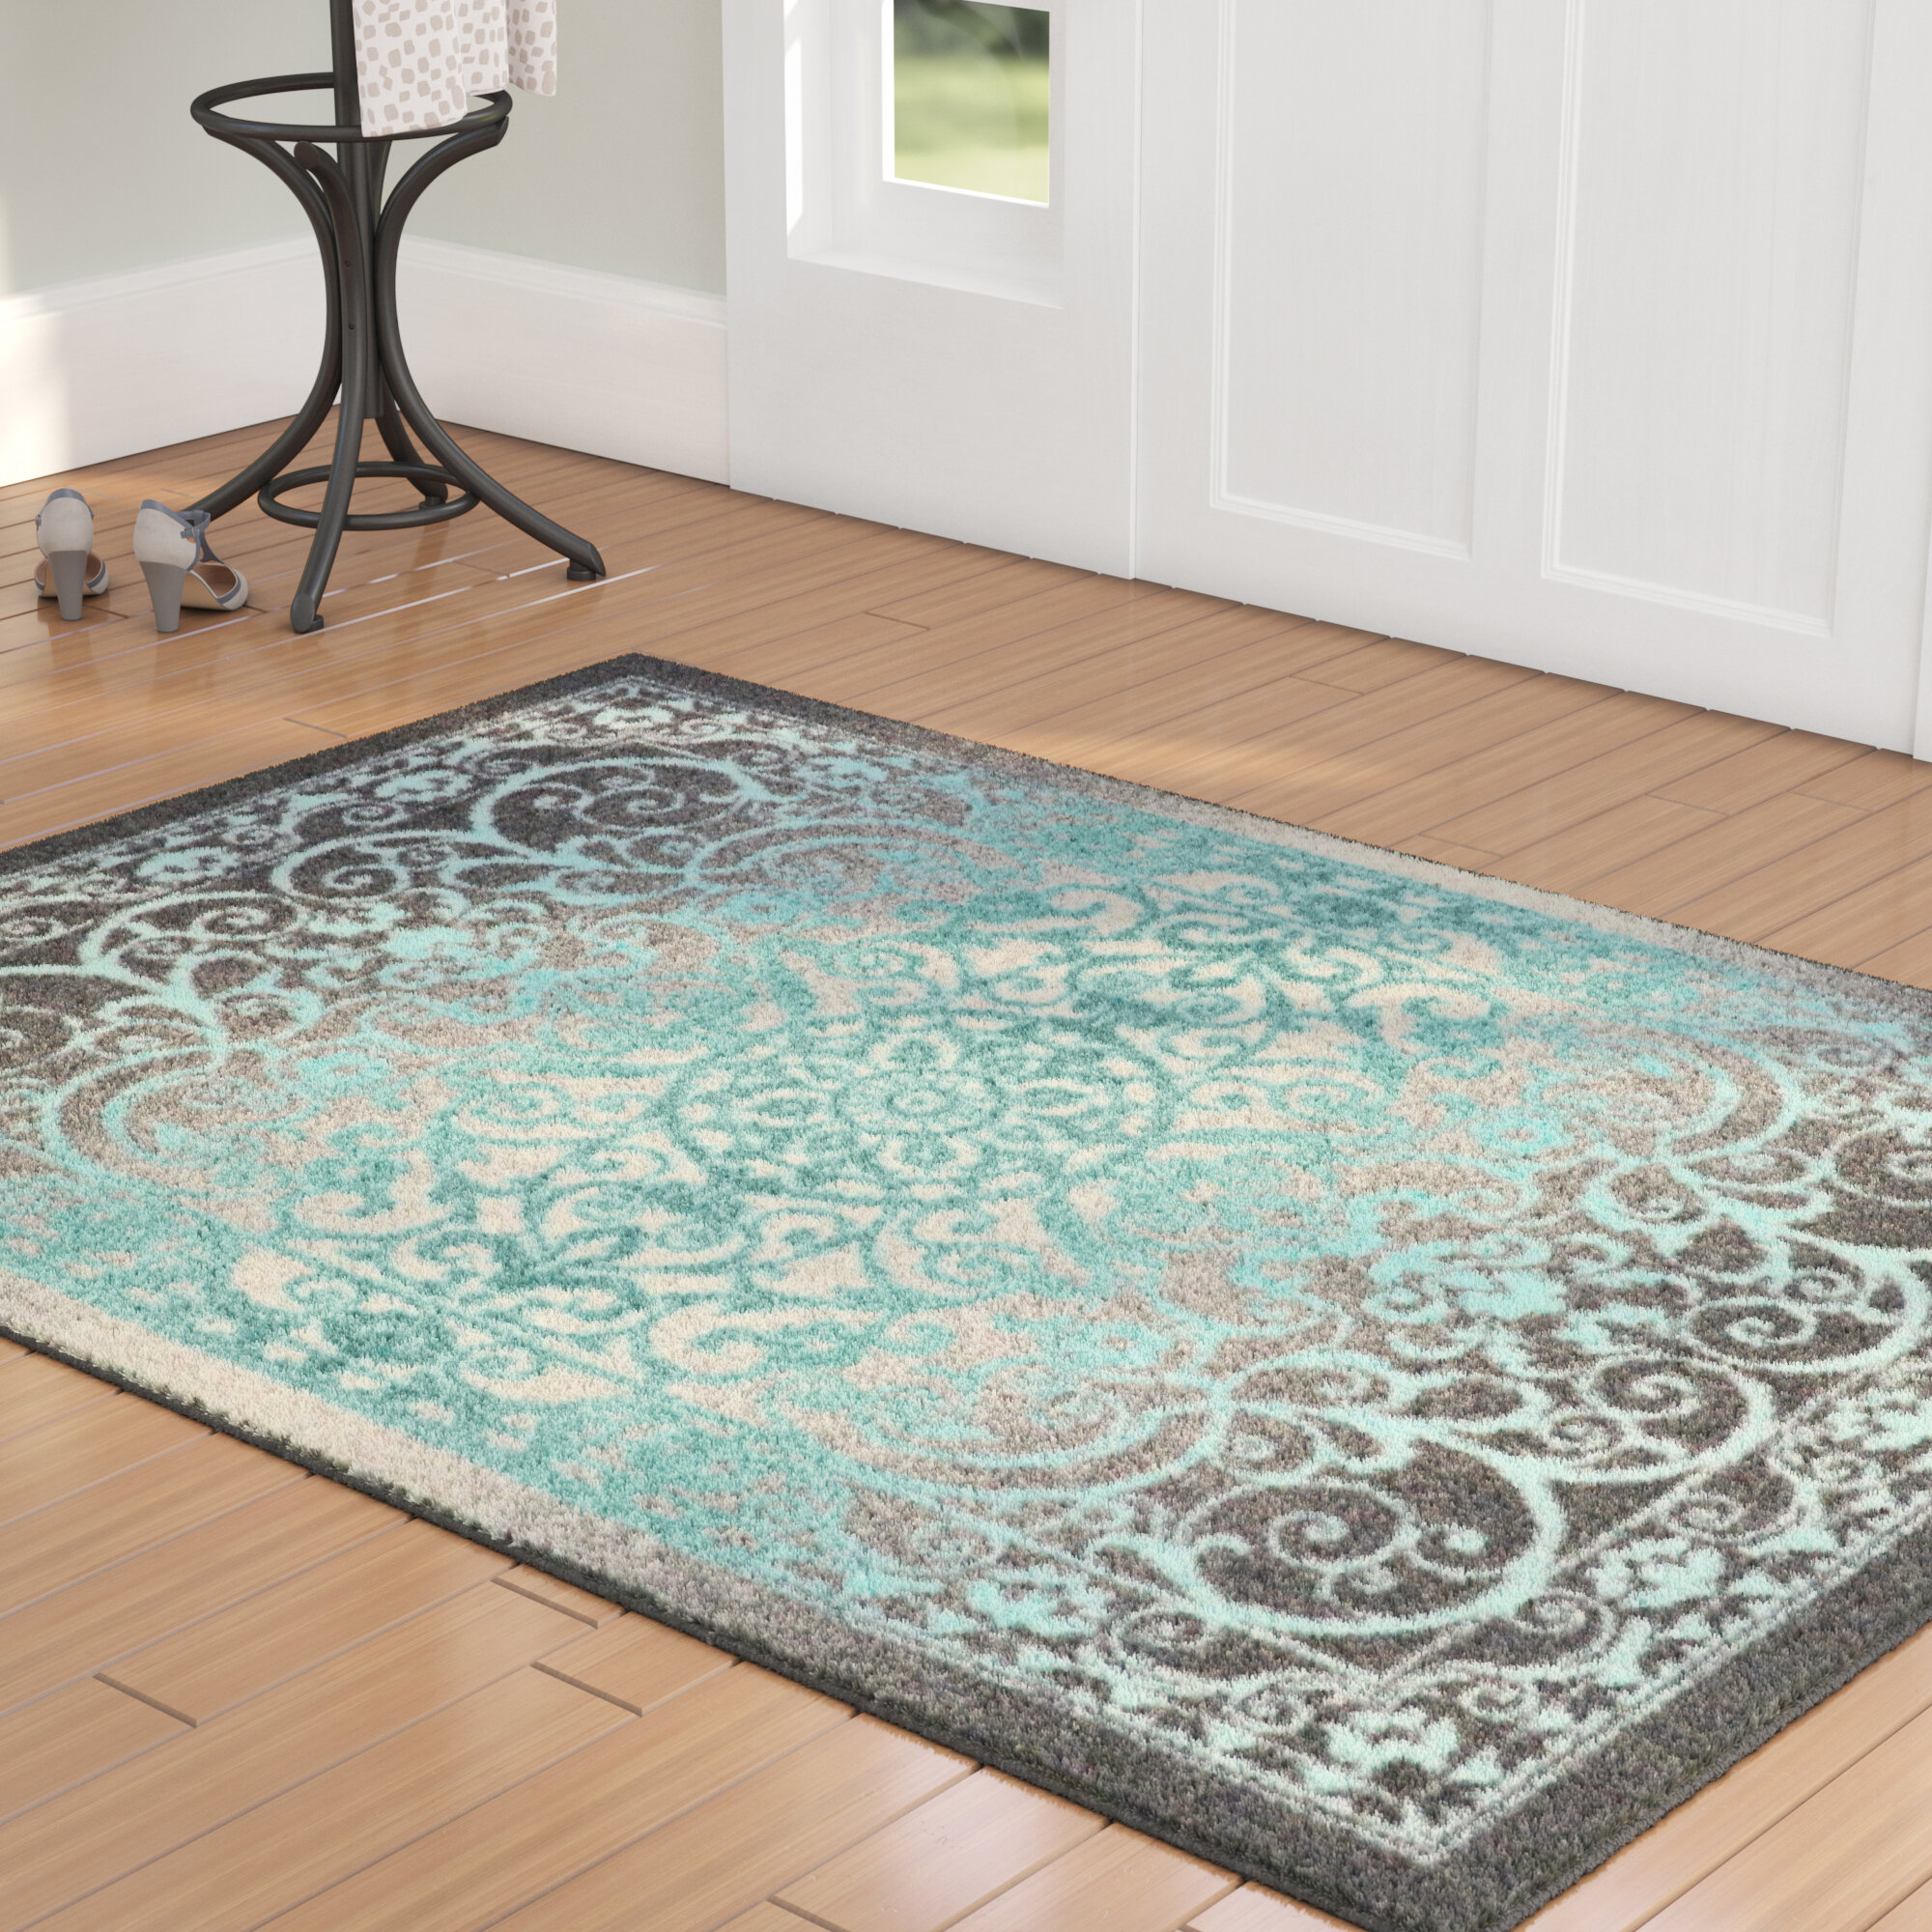 Charlton Home Landen Area Rug & Reviews | Wayfair on kitchen baseboard ideas, kitchen flooring ideas, kitchen pot holder ideas, kitchen rug ideas, kitchen basket ideas, kitchen chair ideas, kitchen floor ideas,